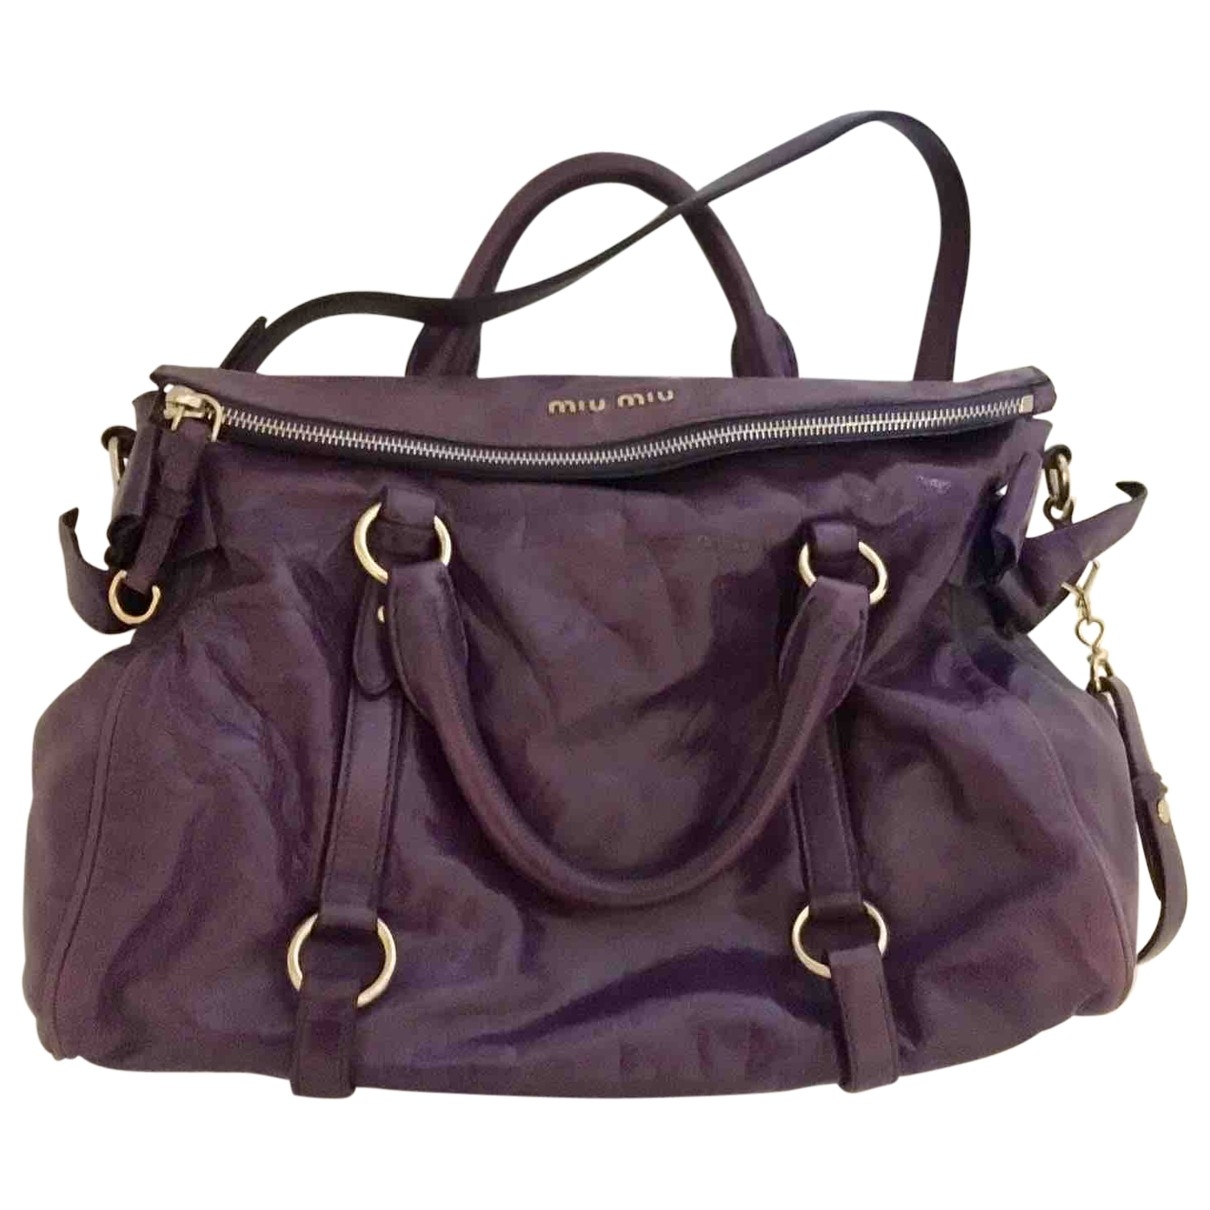 Miu Miu Bow bag Purple Leather handbag for Women \N